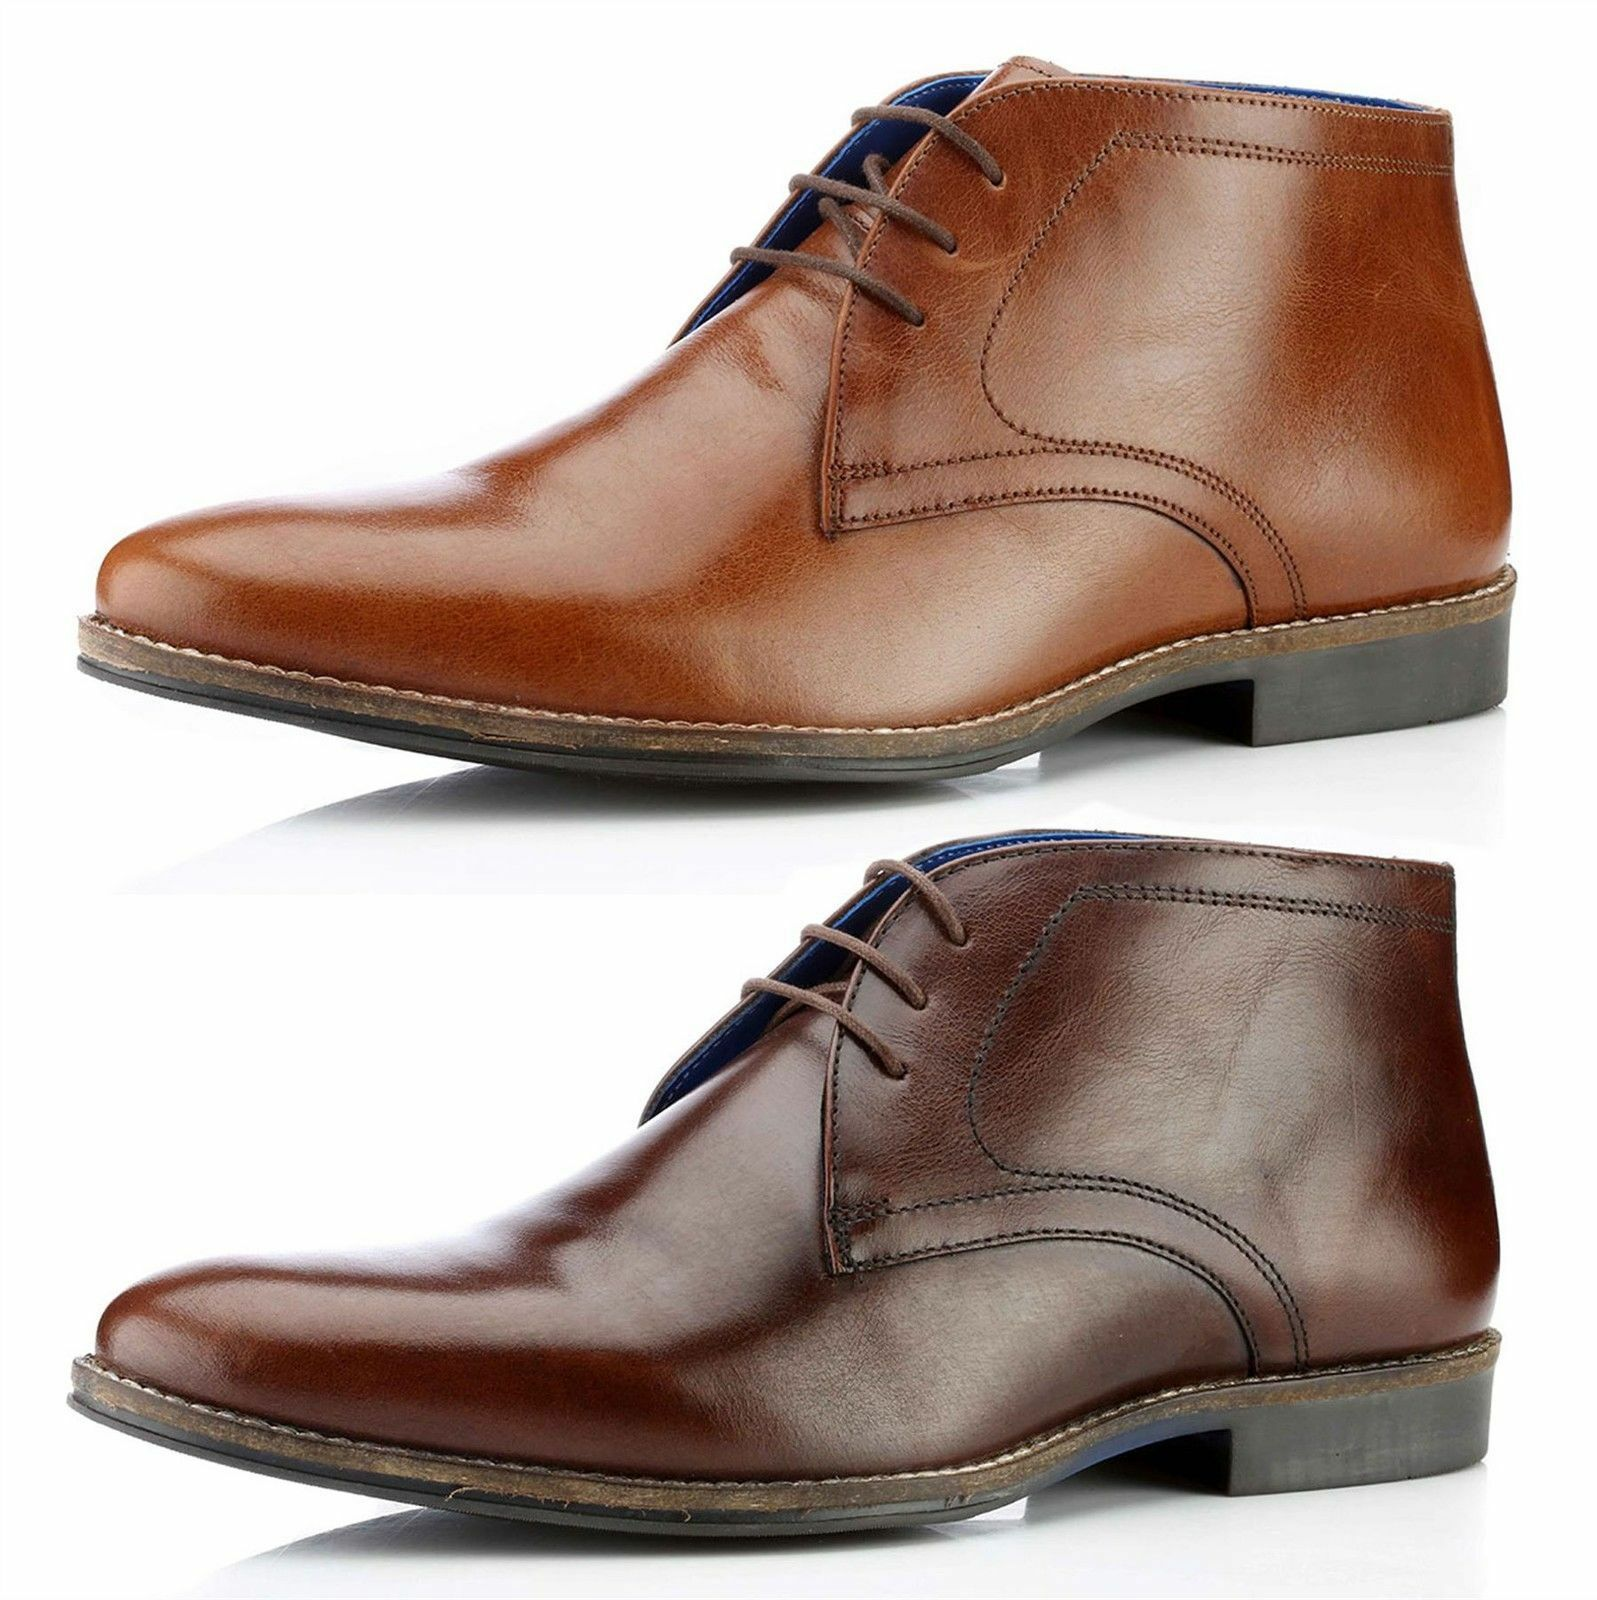 Red Tape Elstow Mens Lace Up Leather Ankle Boots Round Toe Brown Tan